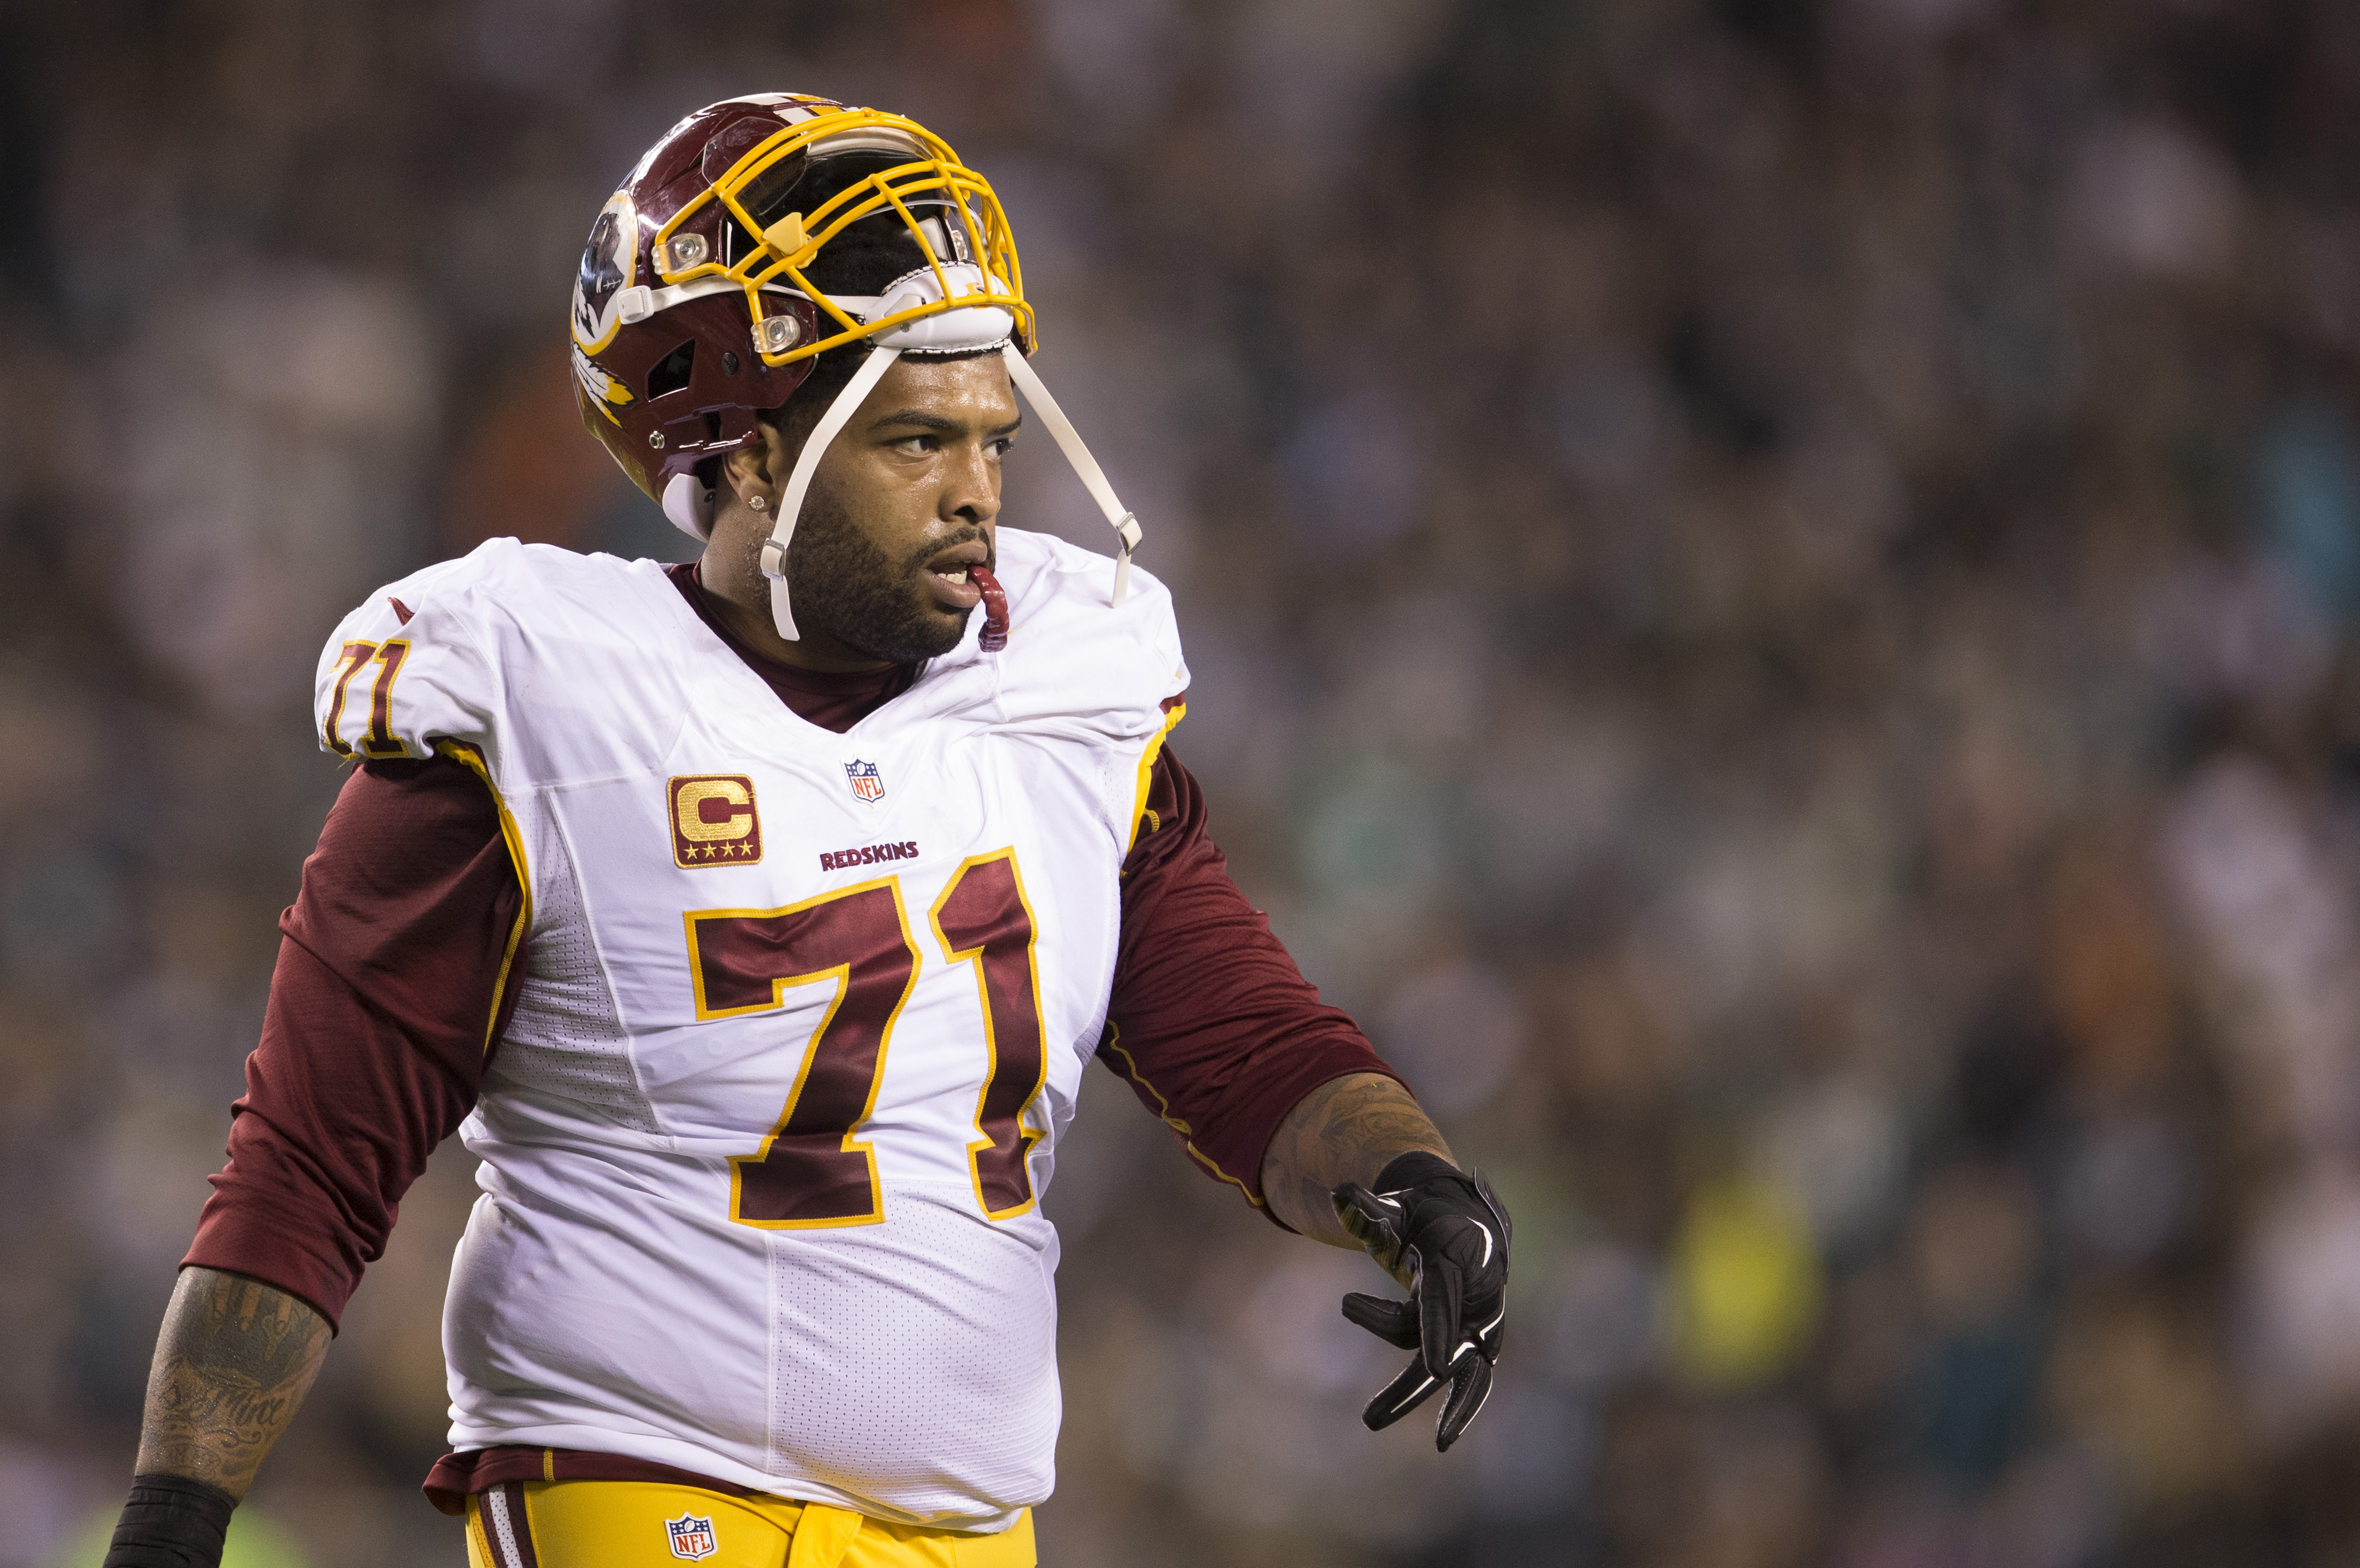 Redskins Trent Williams could be the team s next Hall of Famer